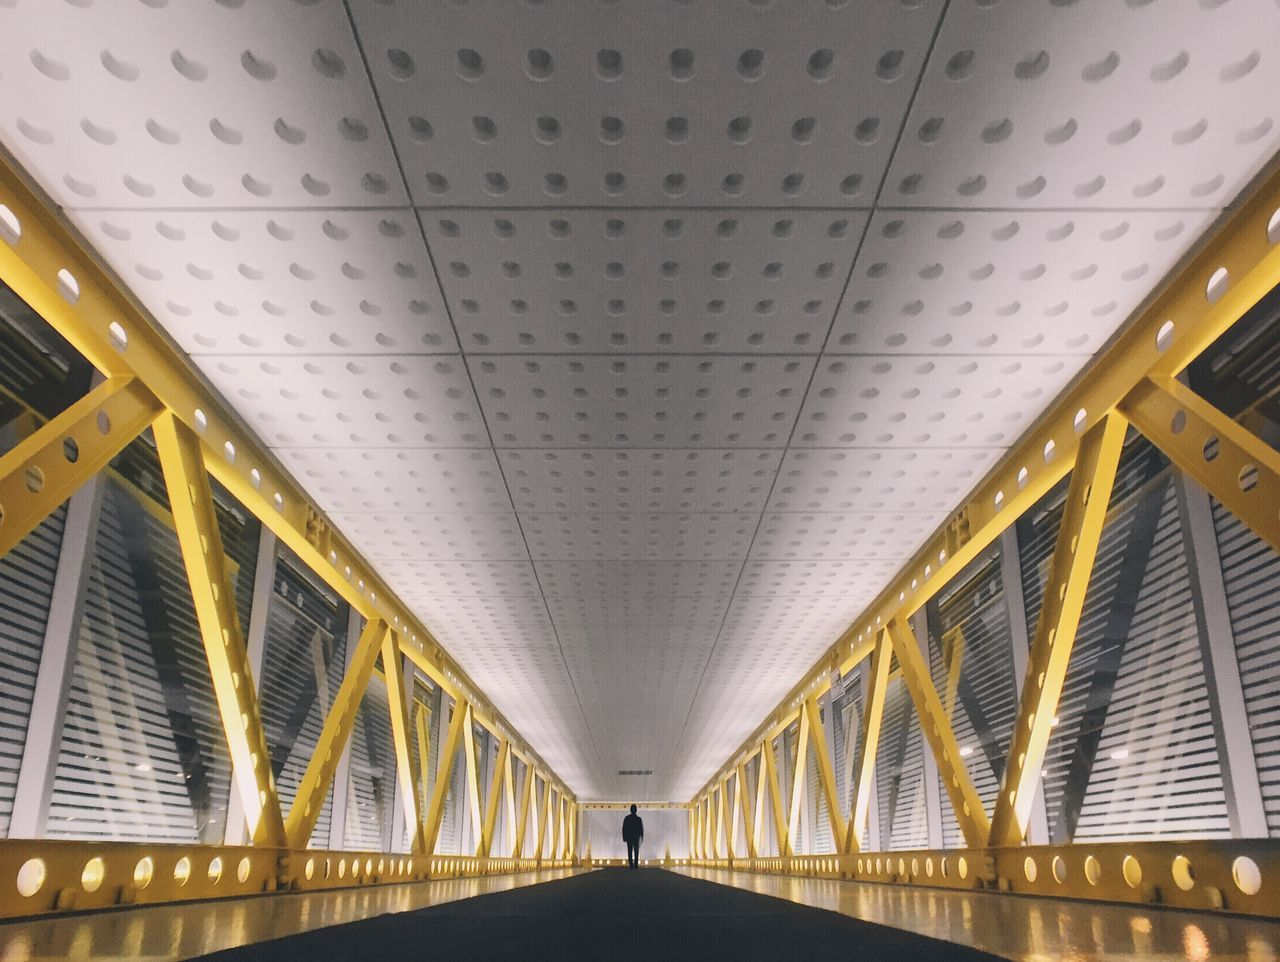 Beautiful stock photos of pattern, Bridge, Ceiling, Chicago, Commuter